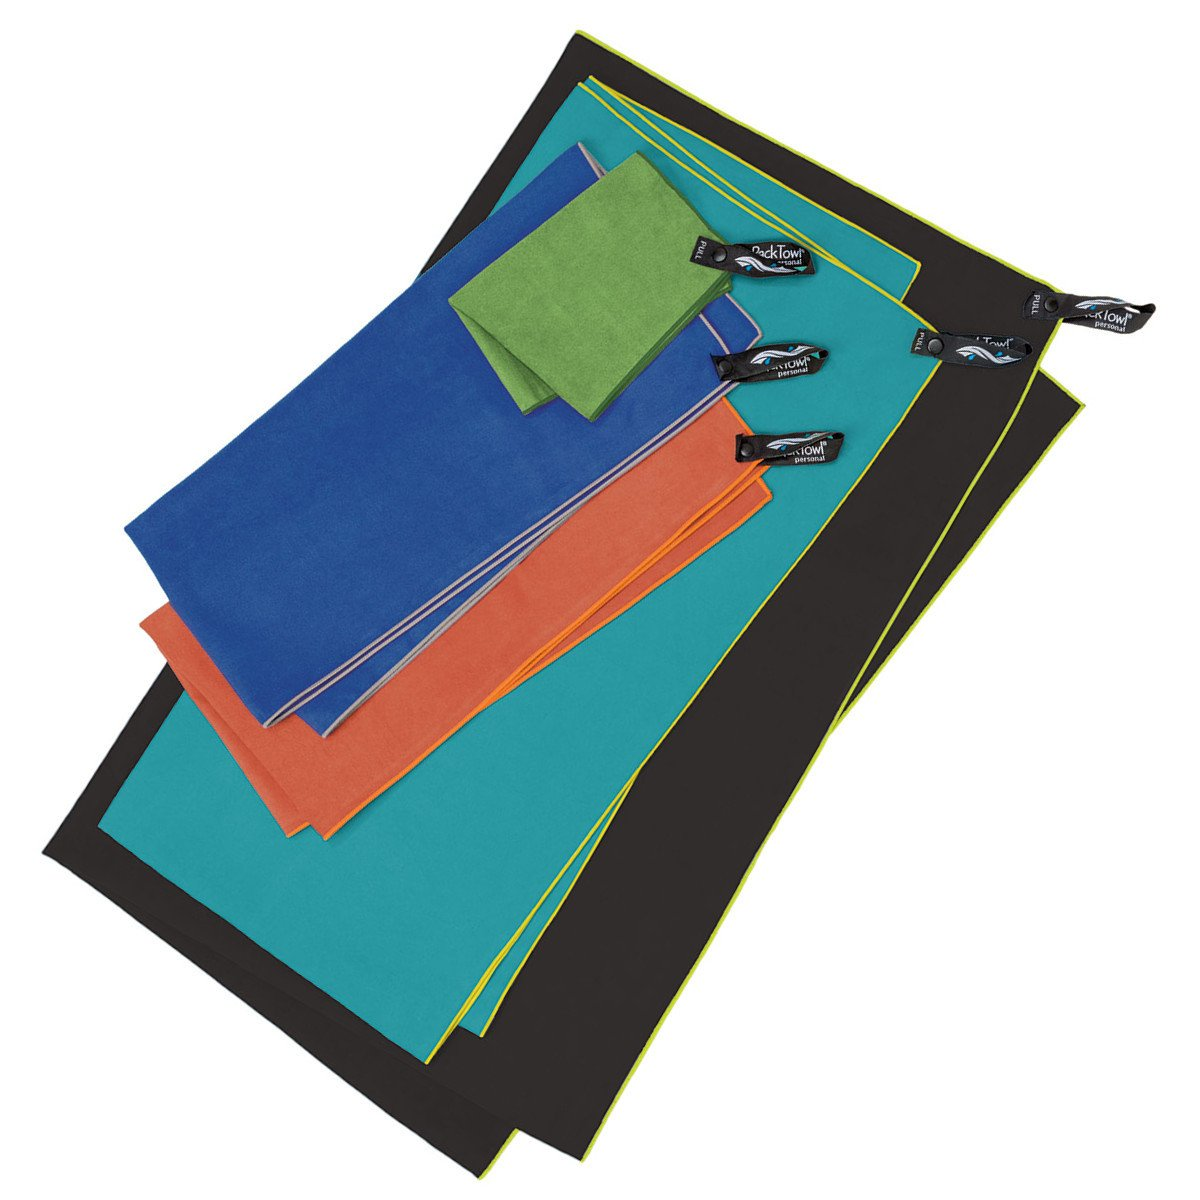 Packtowl Personal travel towels, all sizes shown laid on top of one another